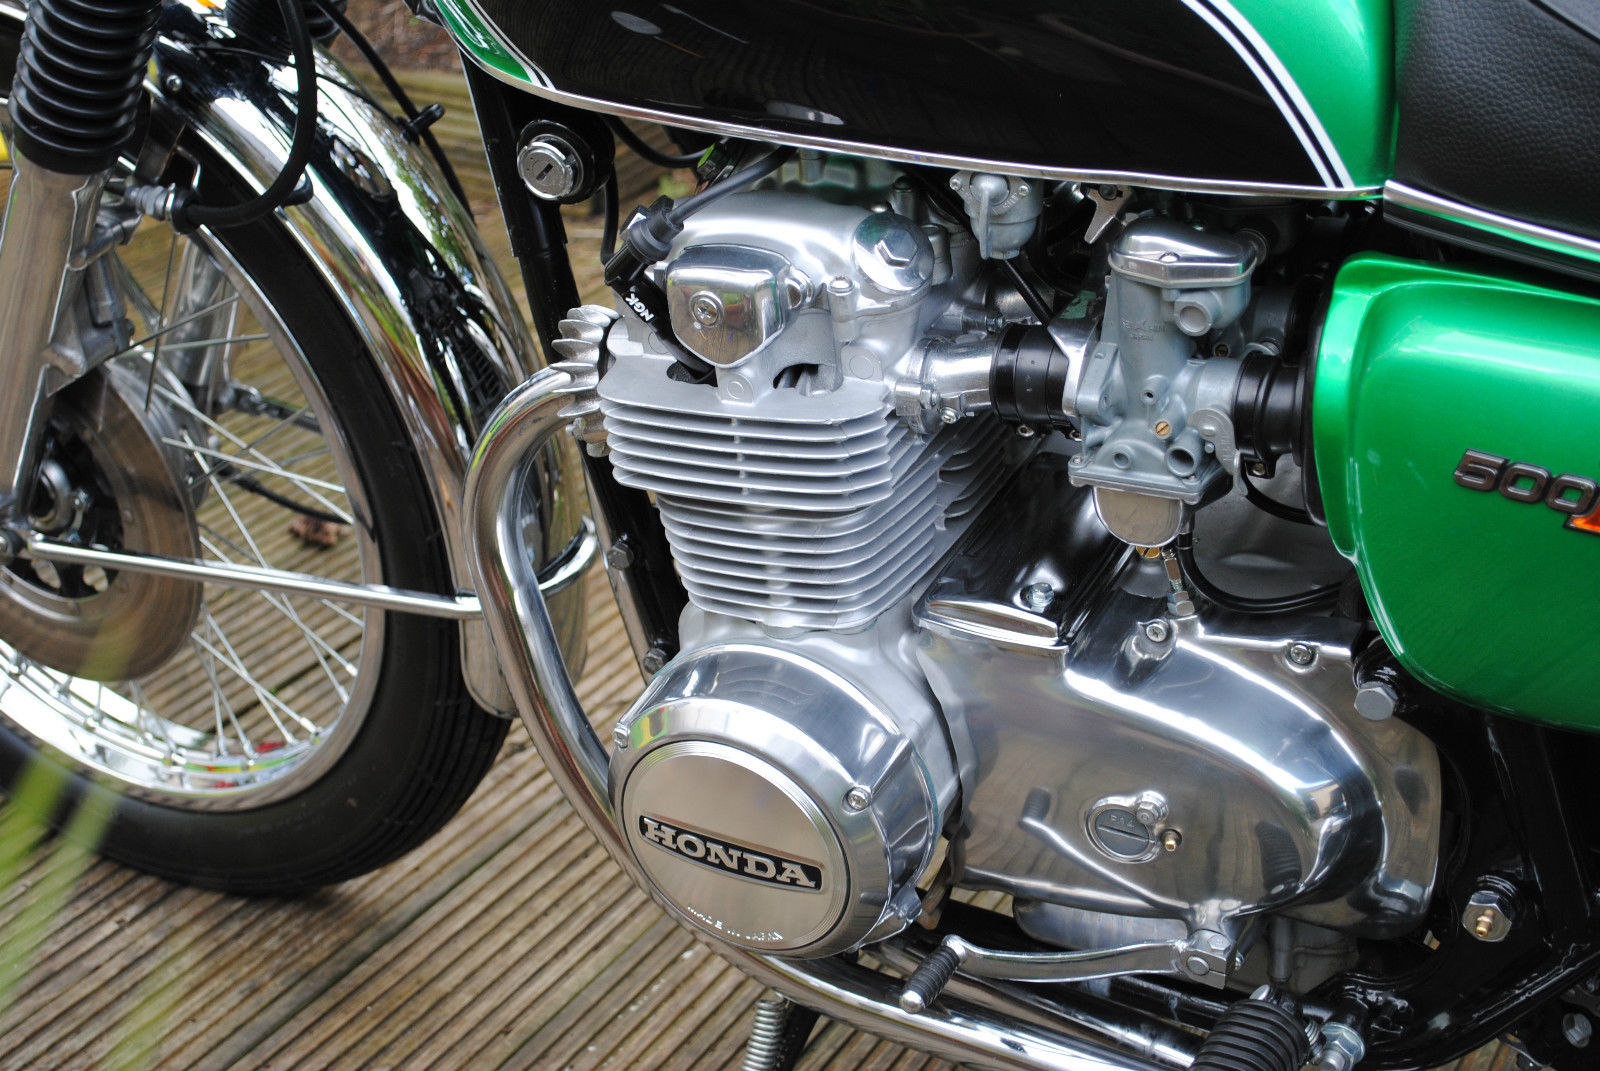 Honda CB500 Four - 1972 - Engine and Gearbox, Front Sprocket Cover, Cylinder Head and Barrels.